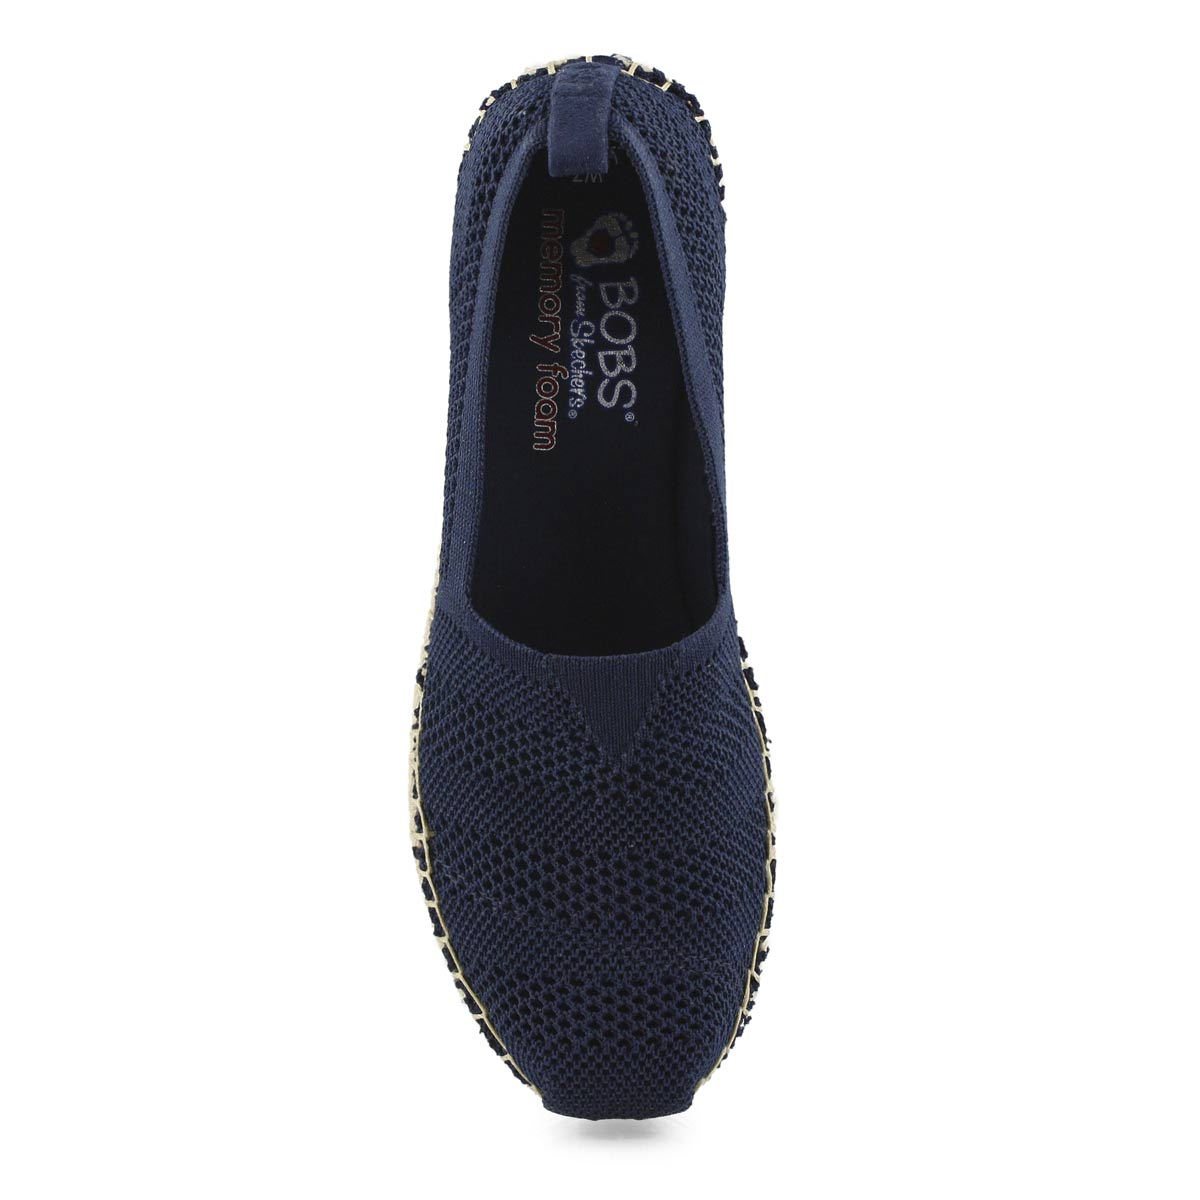 Lds Bobs Breeze navy slip on